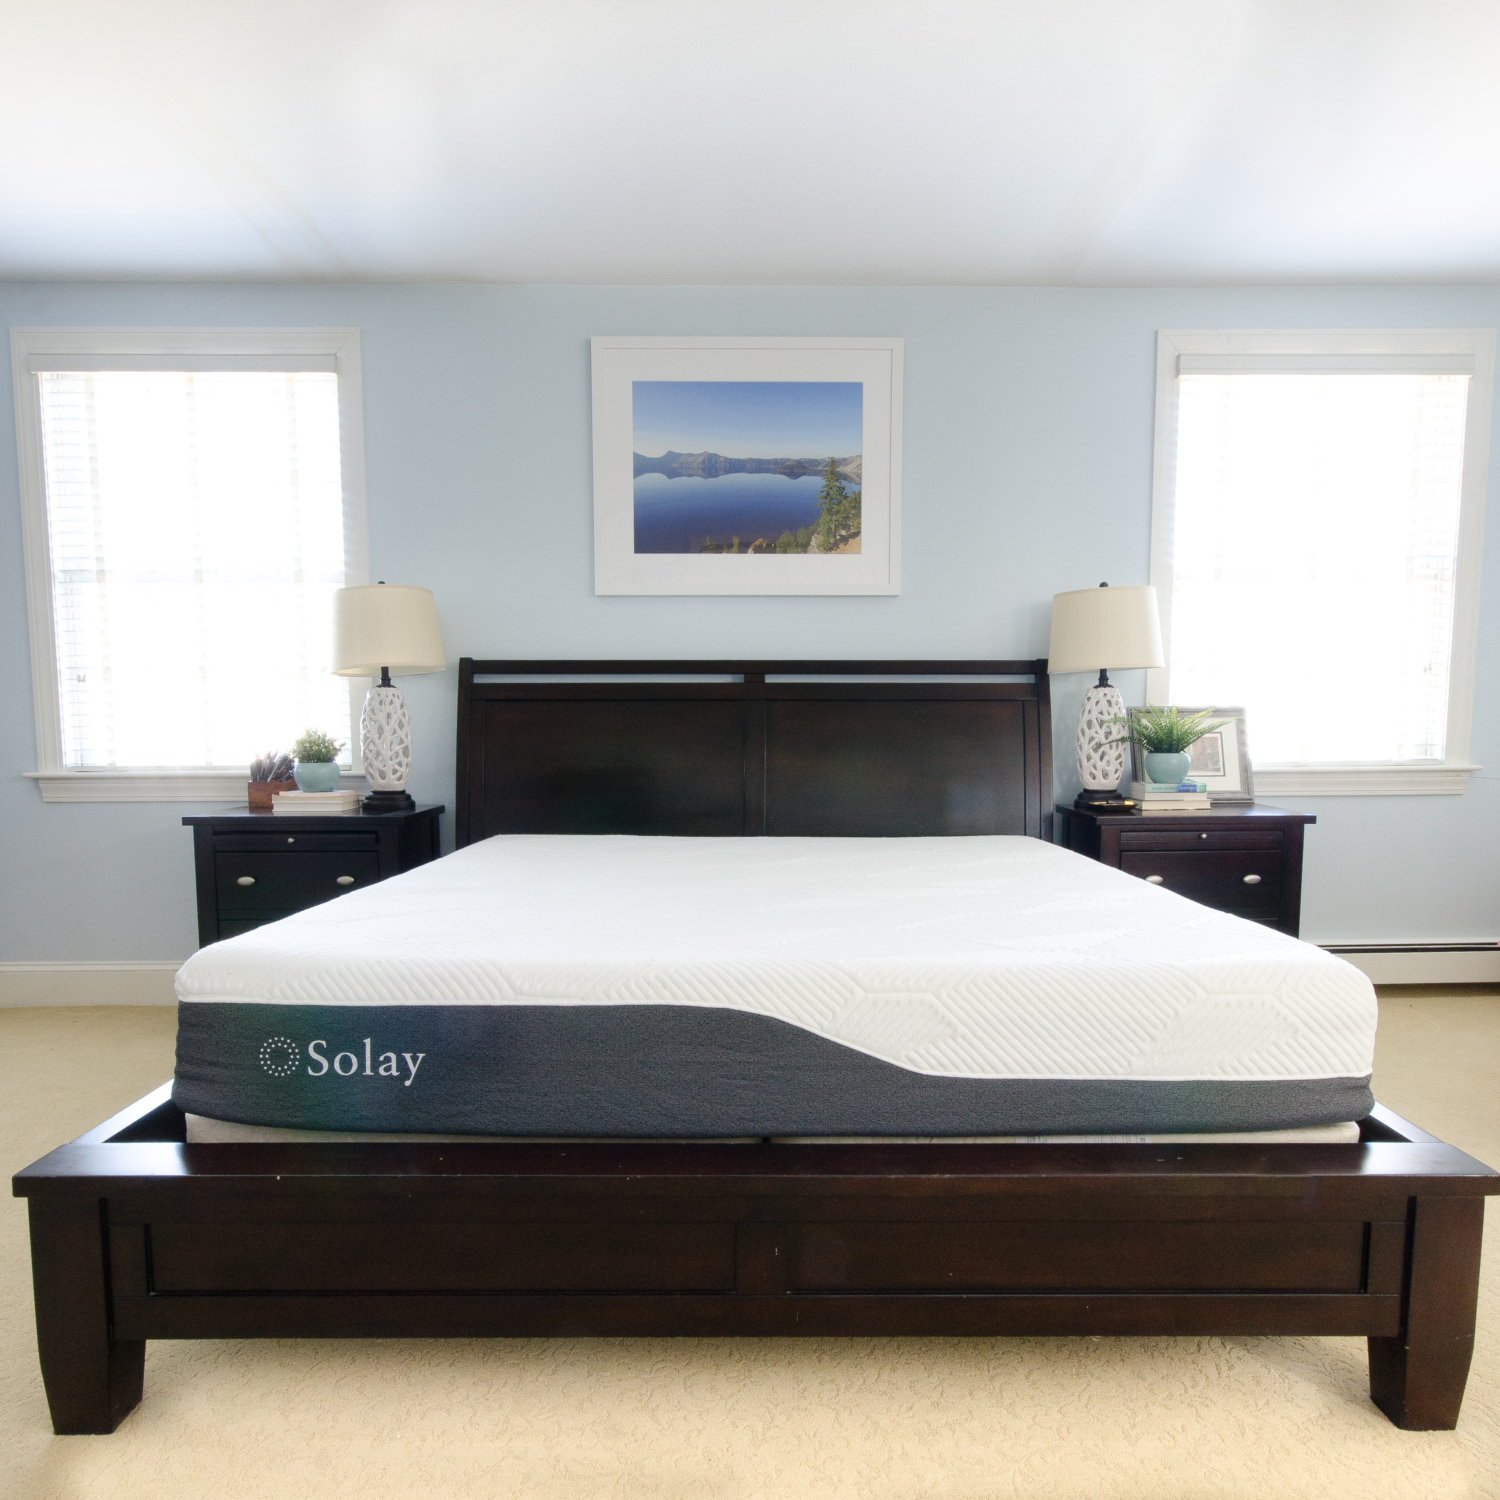 bed in a box review of solay sleep mattress plus 20 off with code. Black Bedroom Furniture Sets. Home Design Ideas